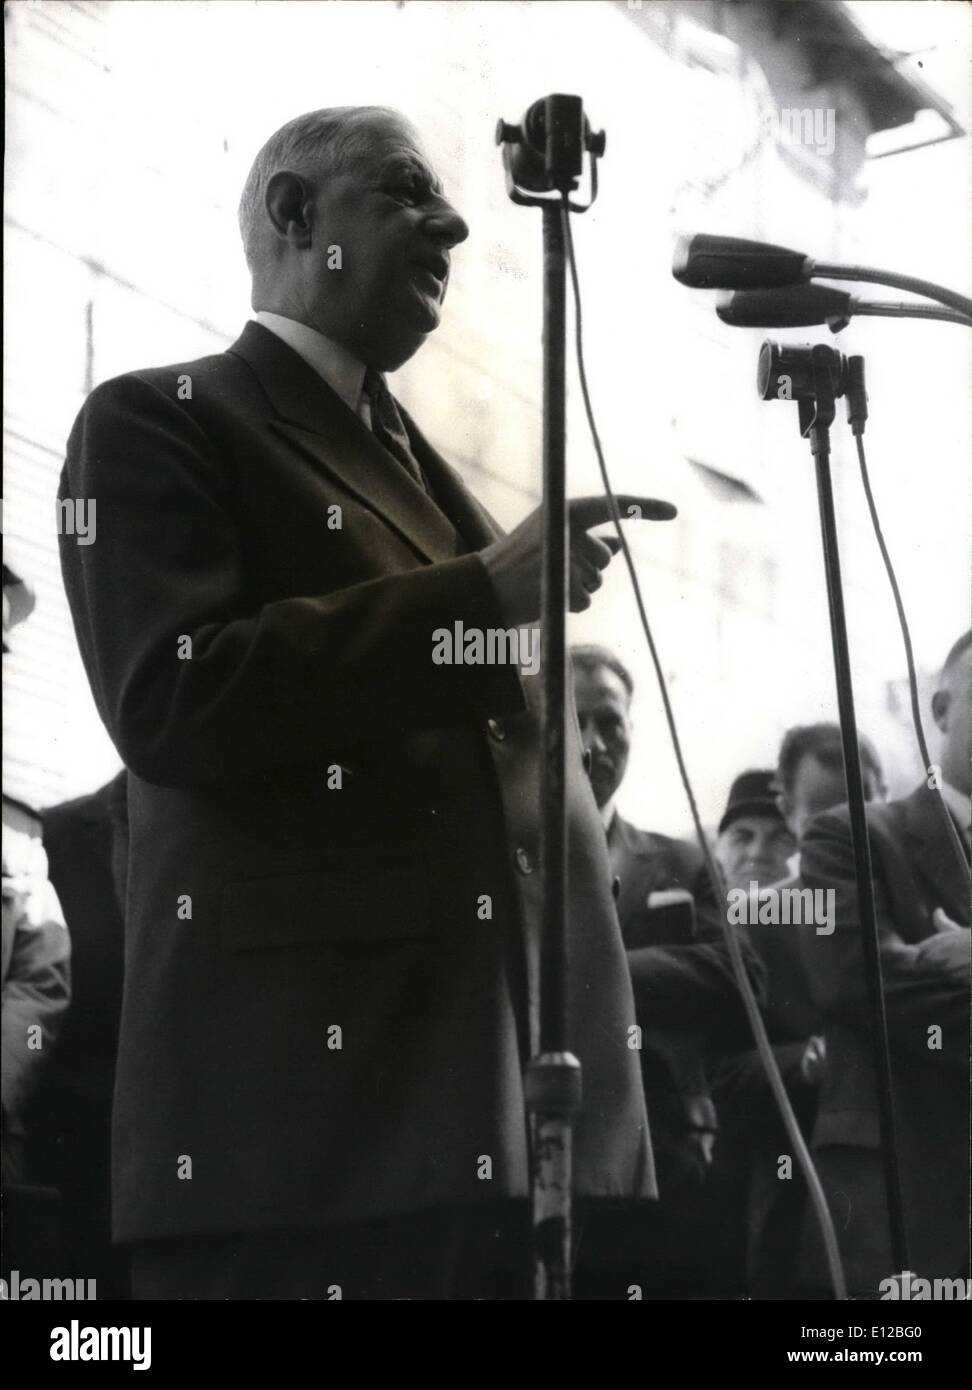 Dec. 09, 2011 - Appeal for National Unity: Photo shows General de Gaulle addressing the farmers of a little visit during this three - day tour of Central France. In all his speeches, de Gaulle made appeal for national unity. - Stock Image